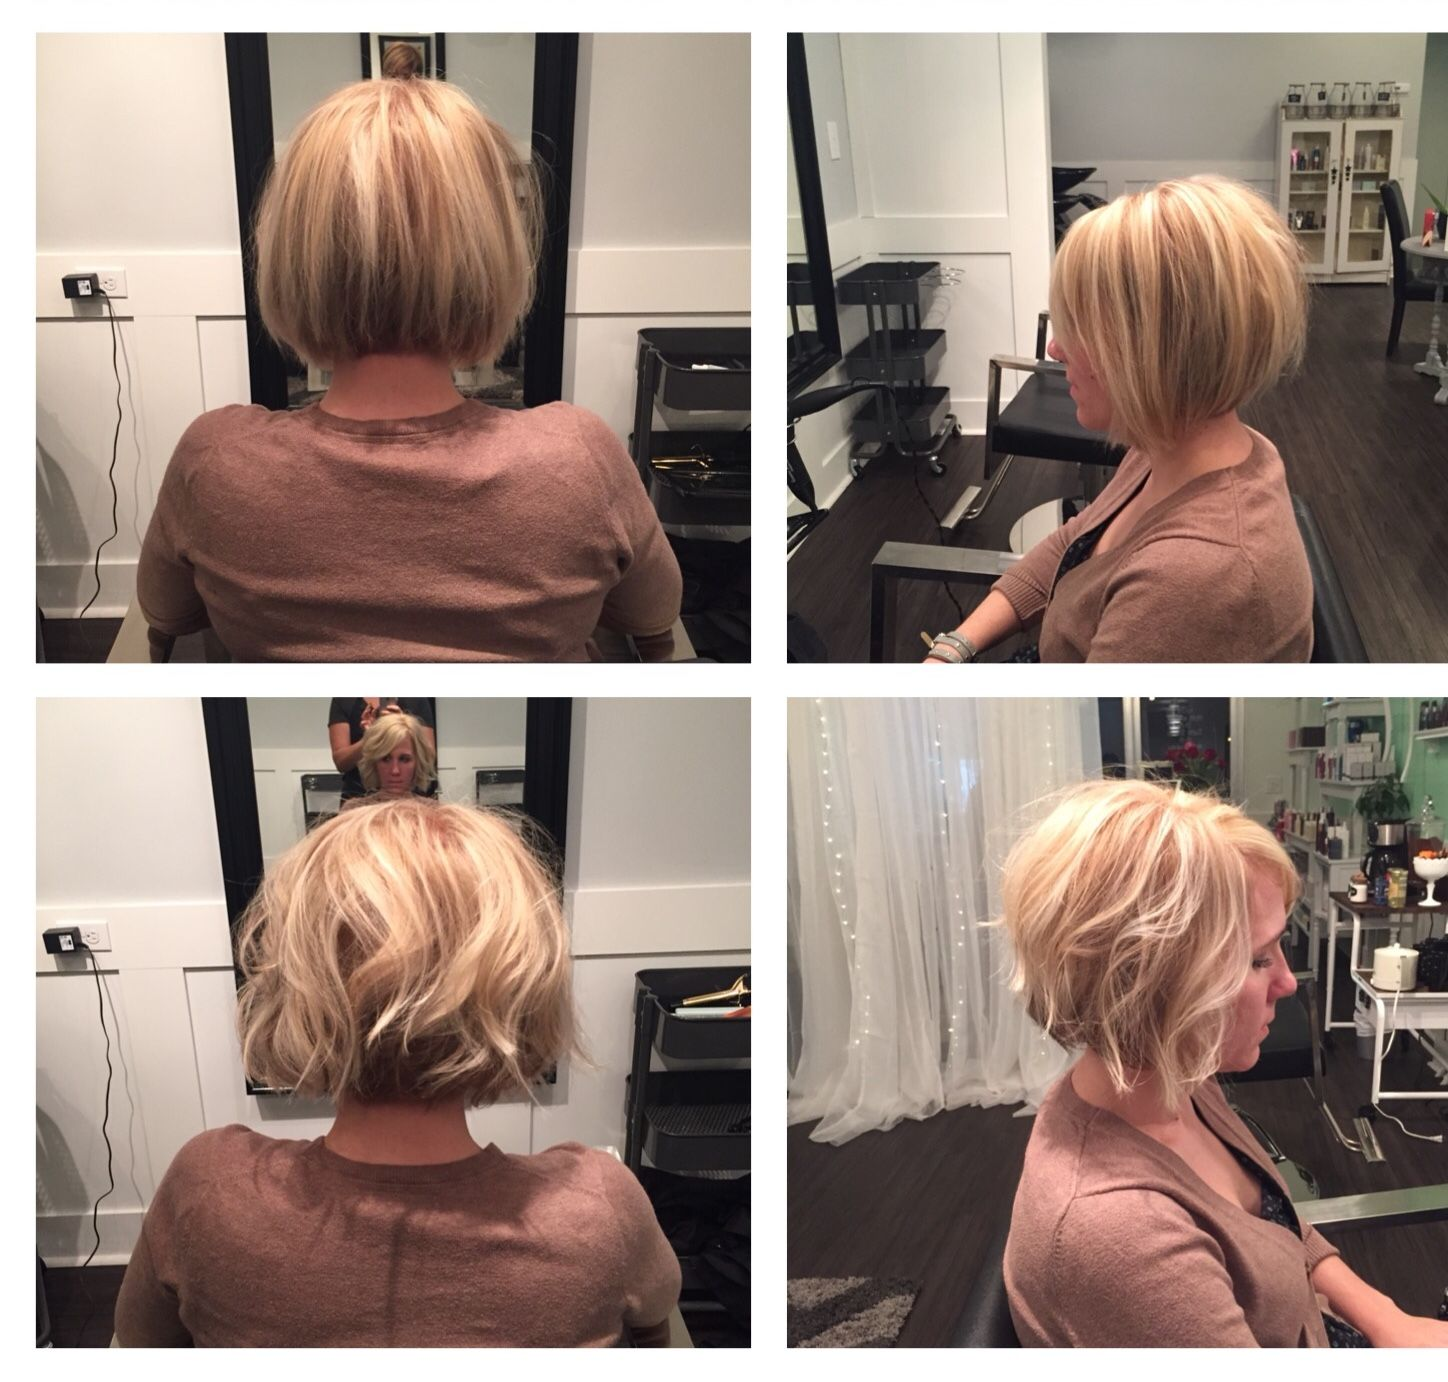 Blonde Bombshell Bob The French Twist Salon I Love This But I M Trying To Grow My Hair O French Twist Hair Formal Hairstyles For Long Hair Updated Hair Styles